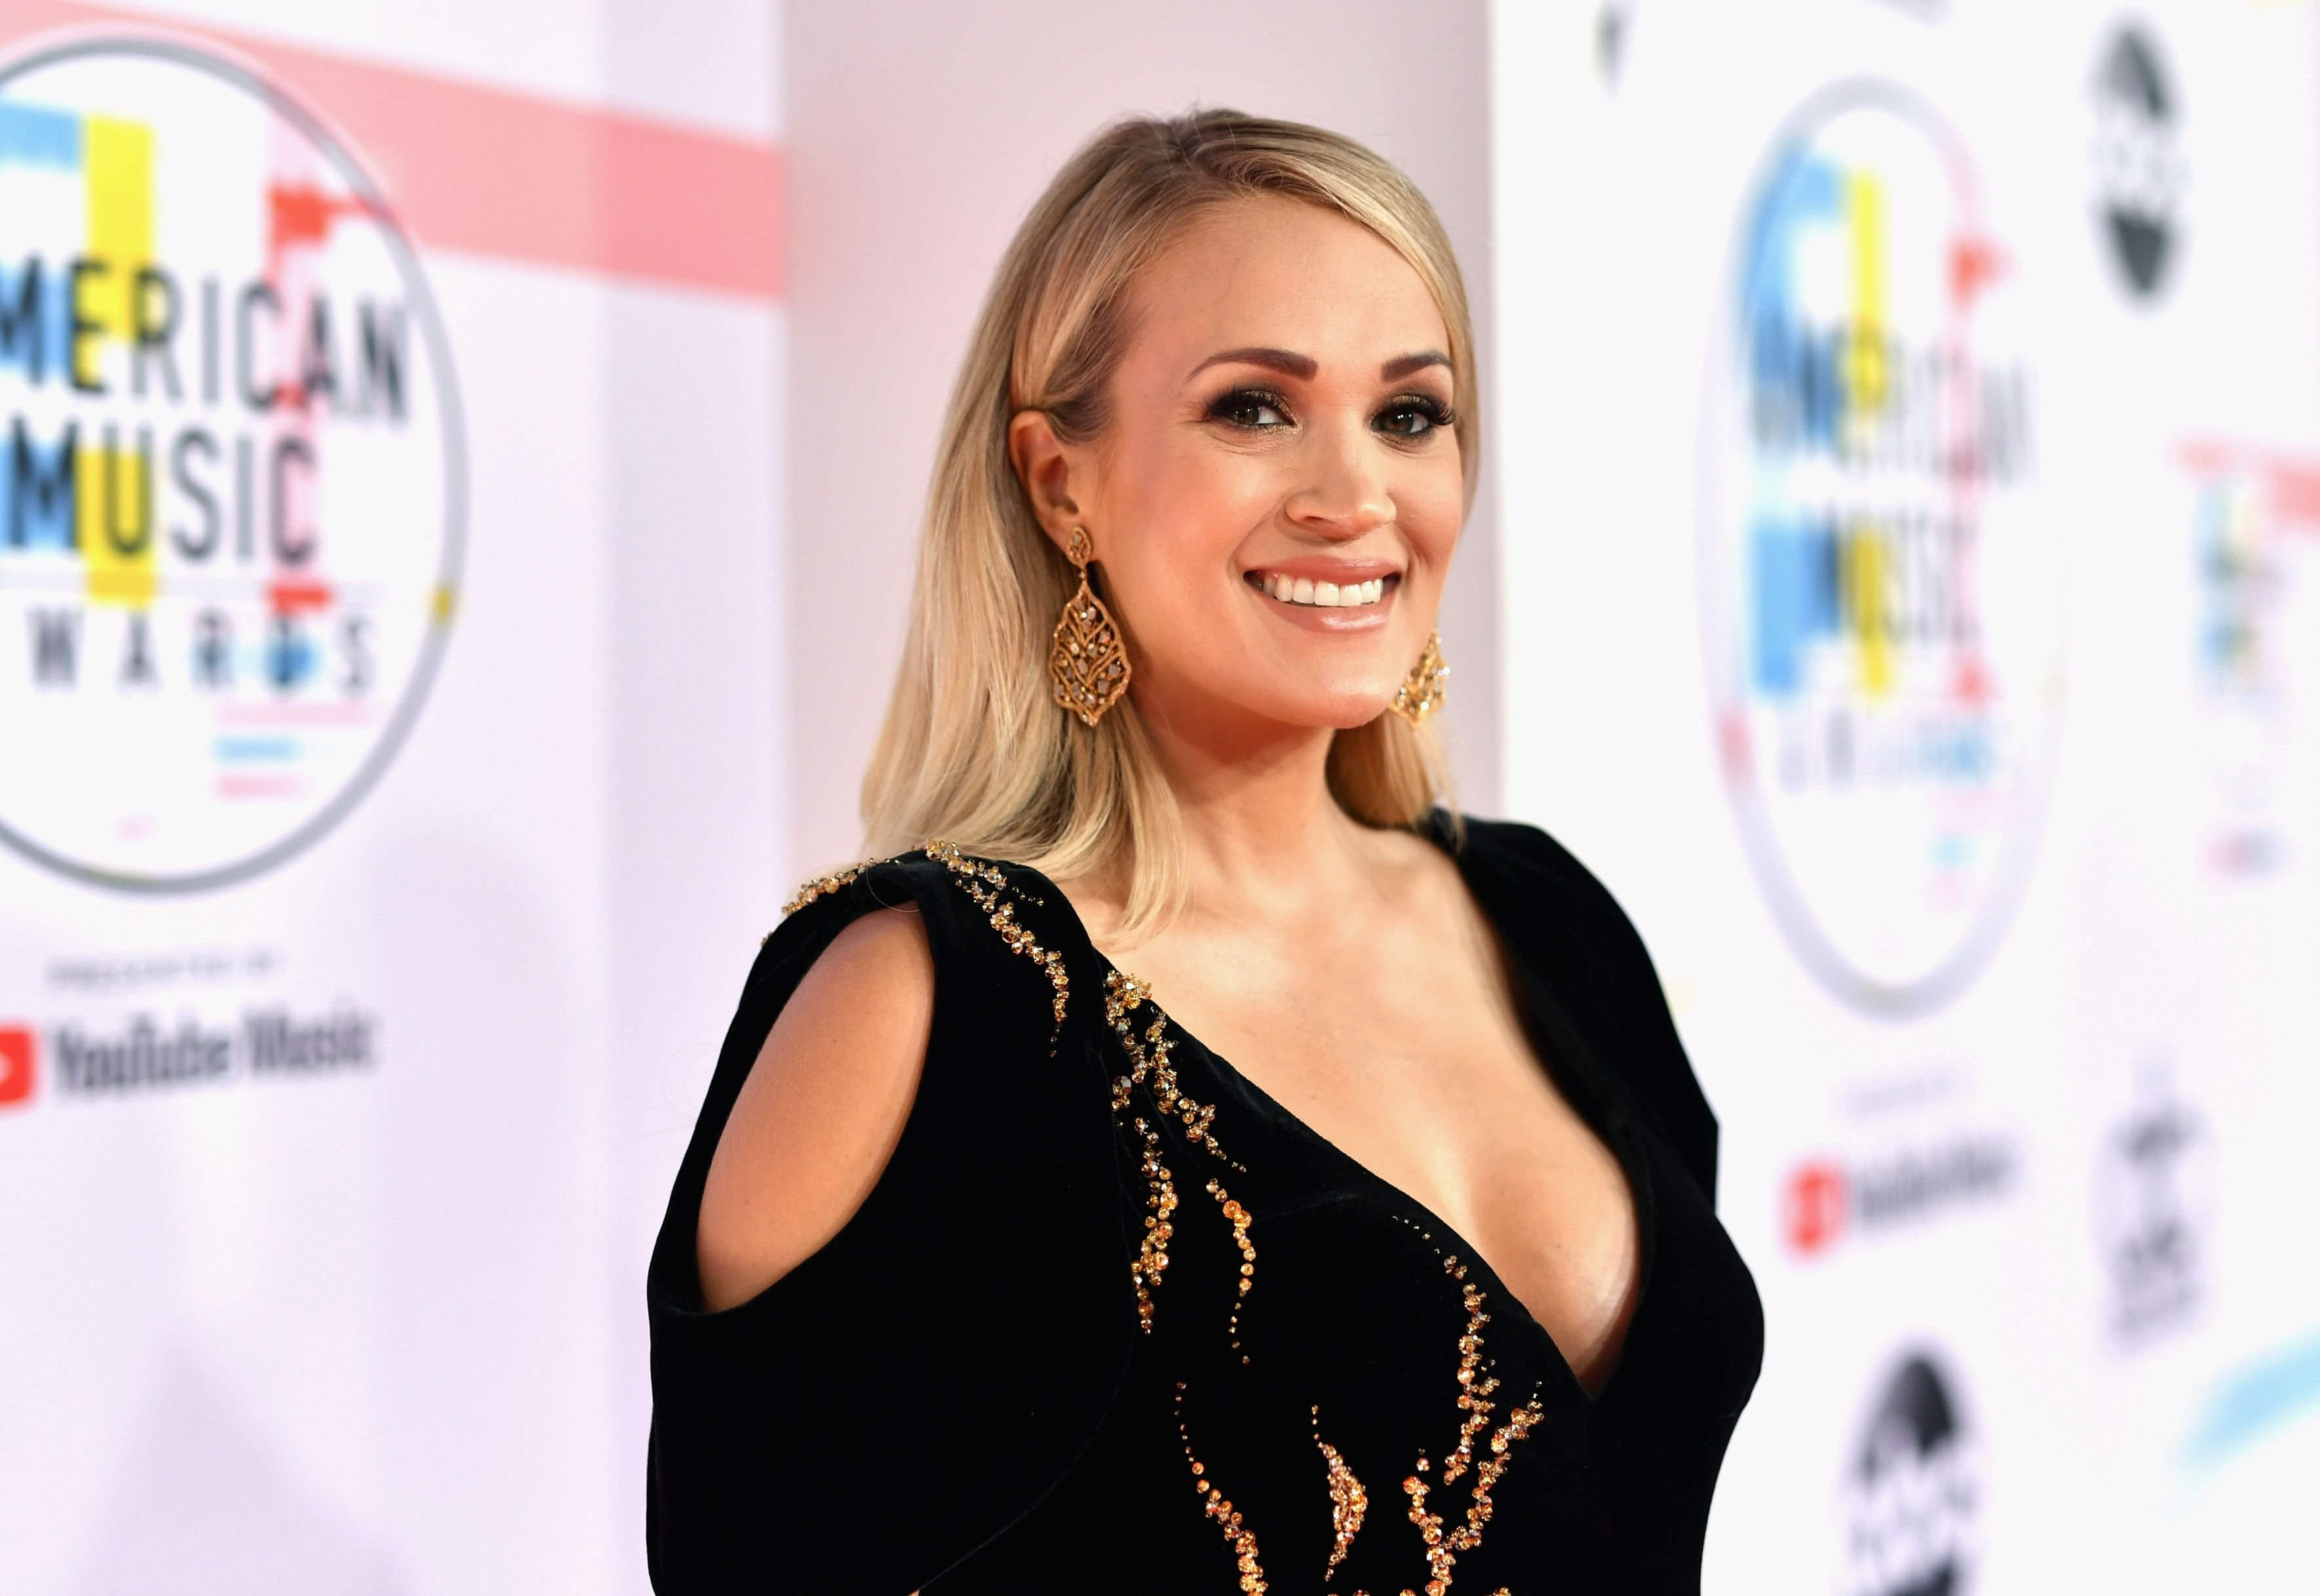 Carrie Underwood at the 2018 American Music Awards at Microsoft Theater on October 9, 2018 | Photo: Getty Images